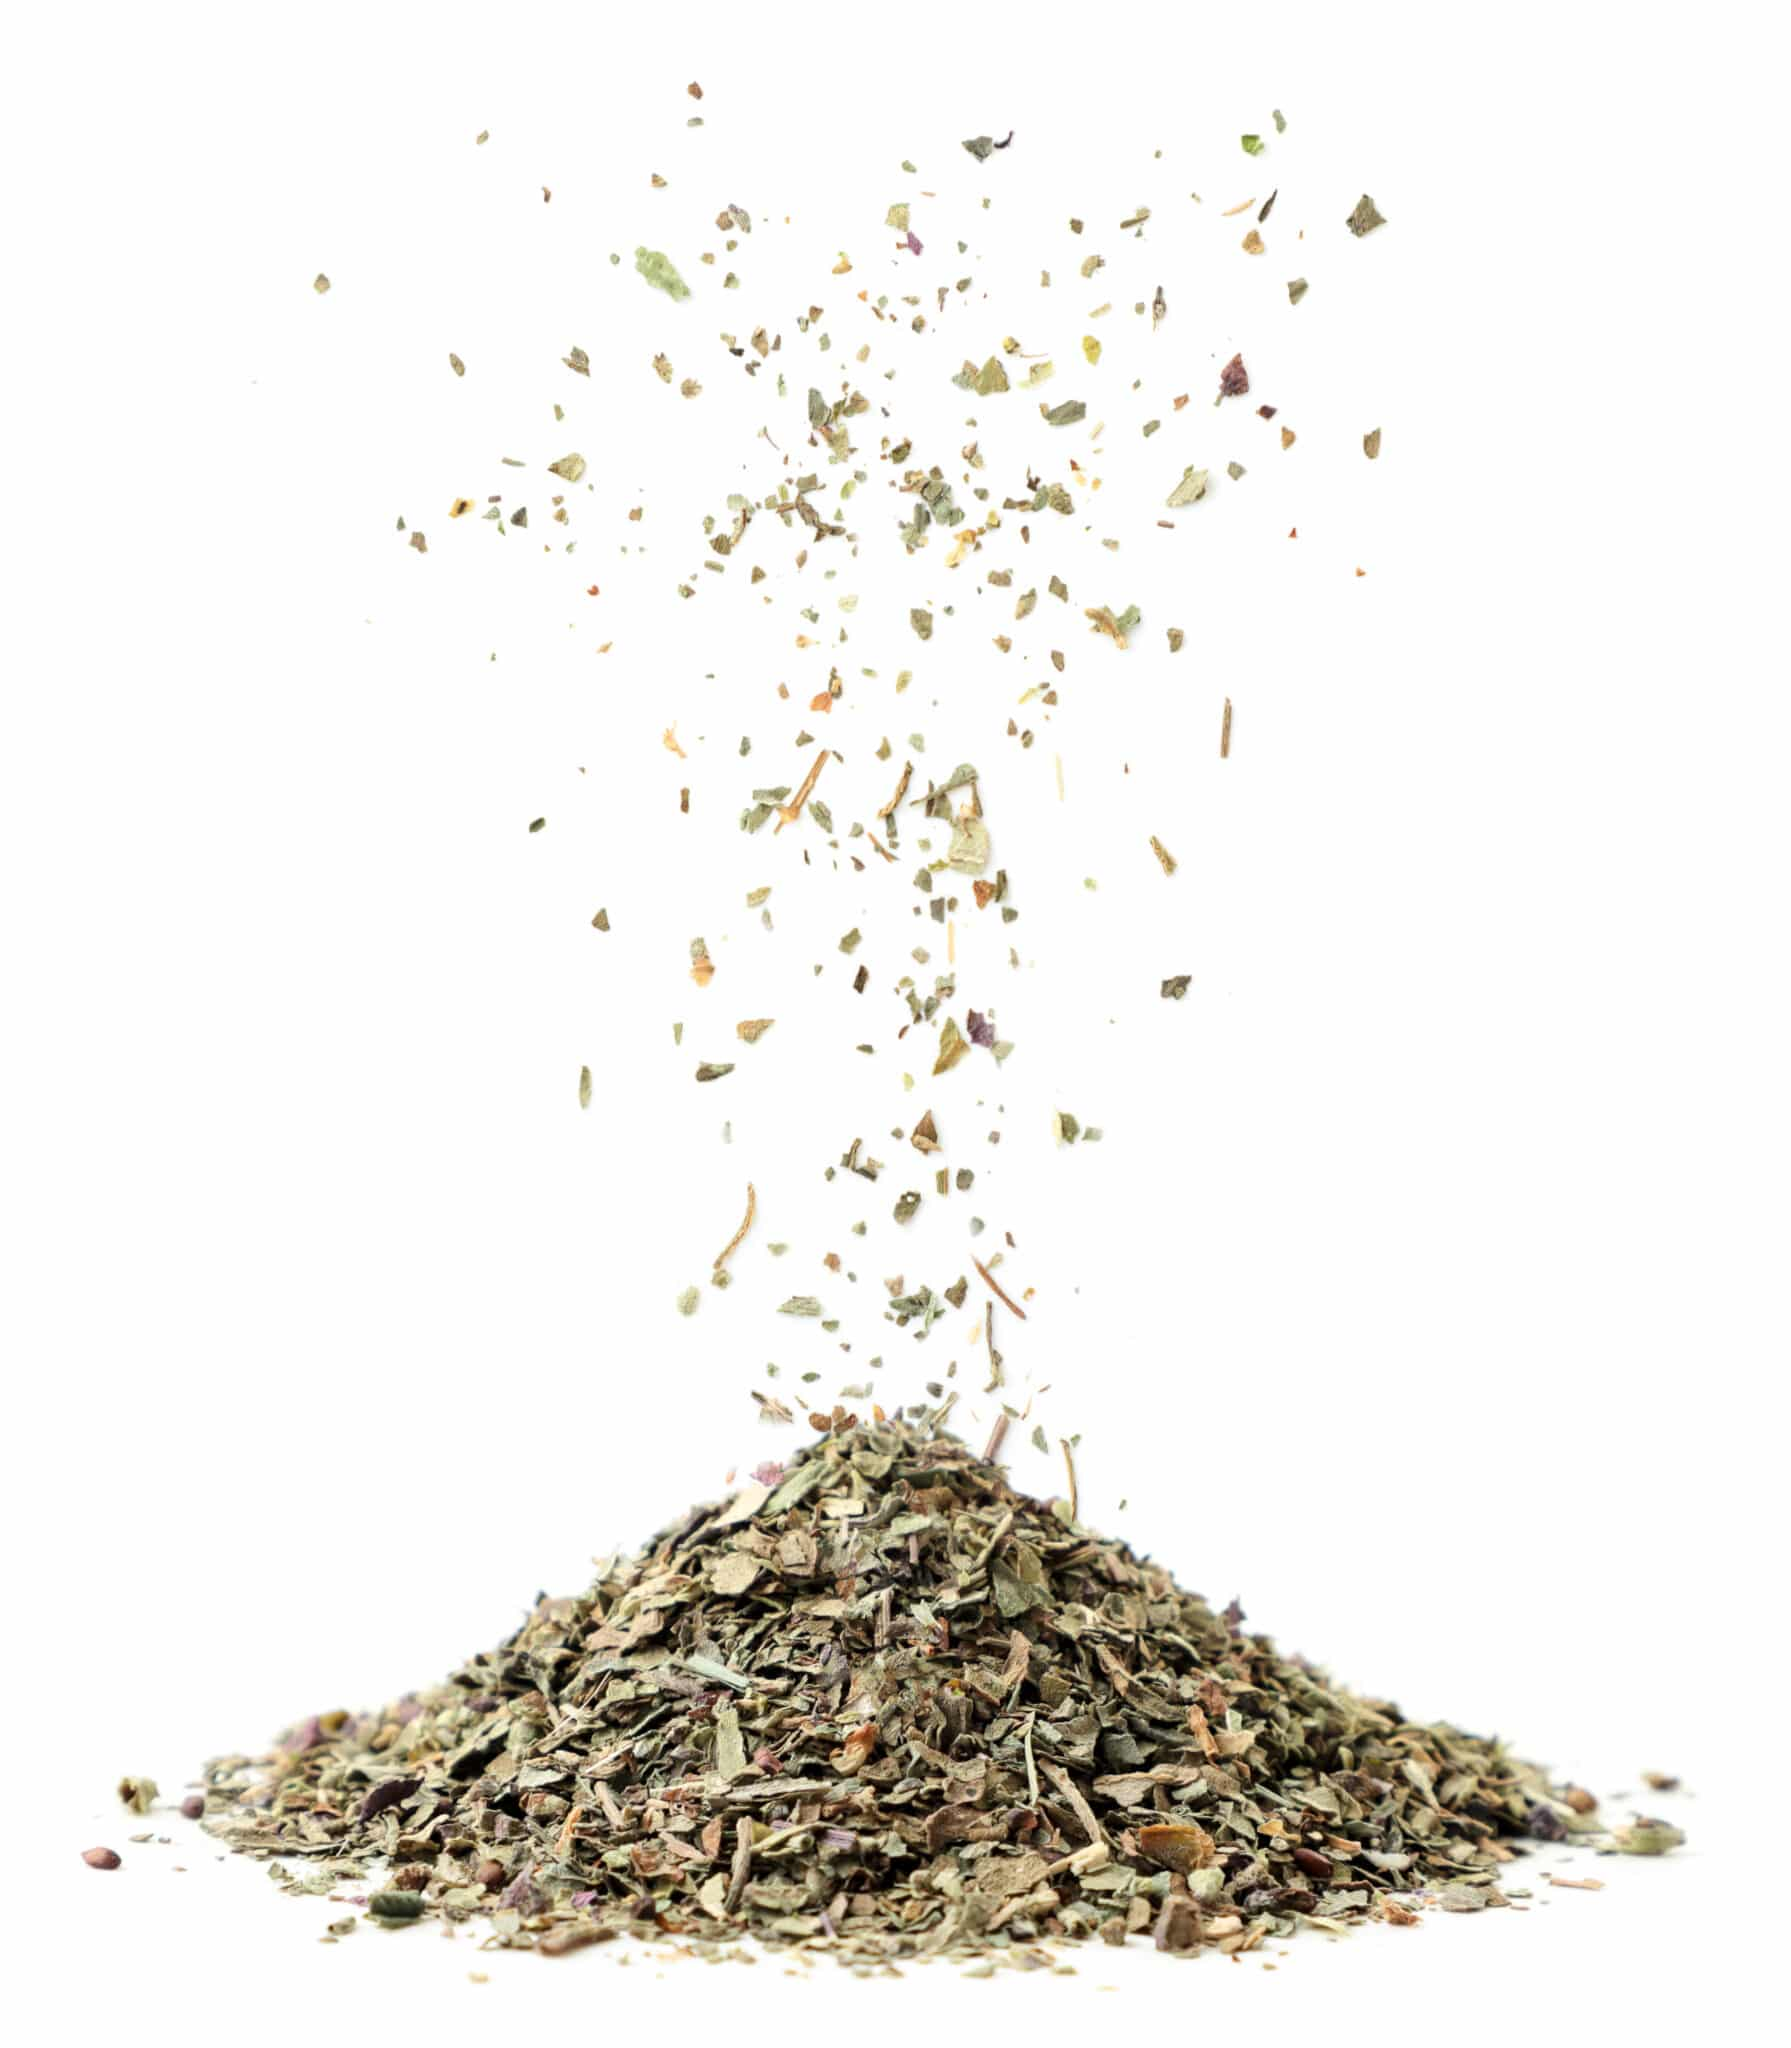 Dried Basil being sprinkled into a mound against a bright white background.